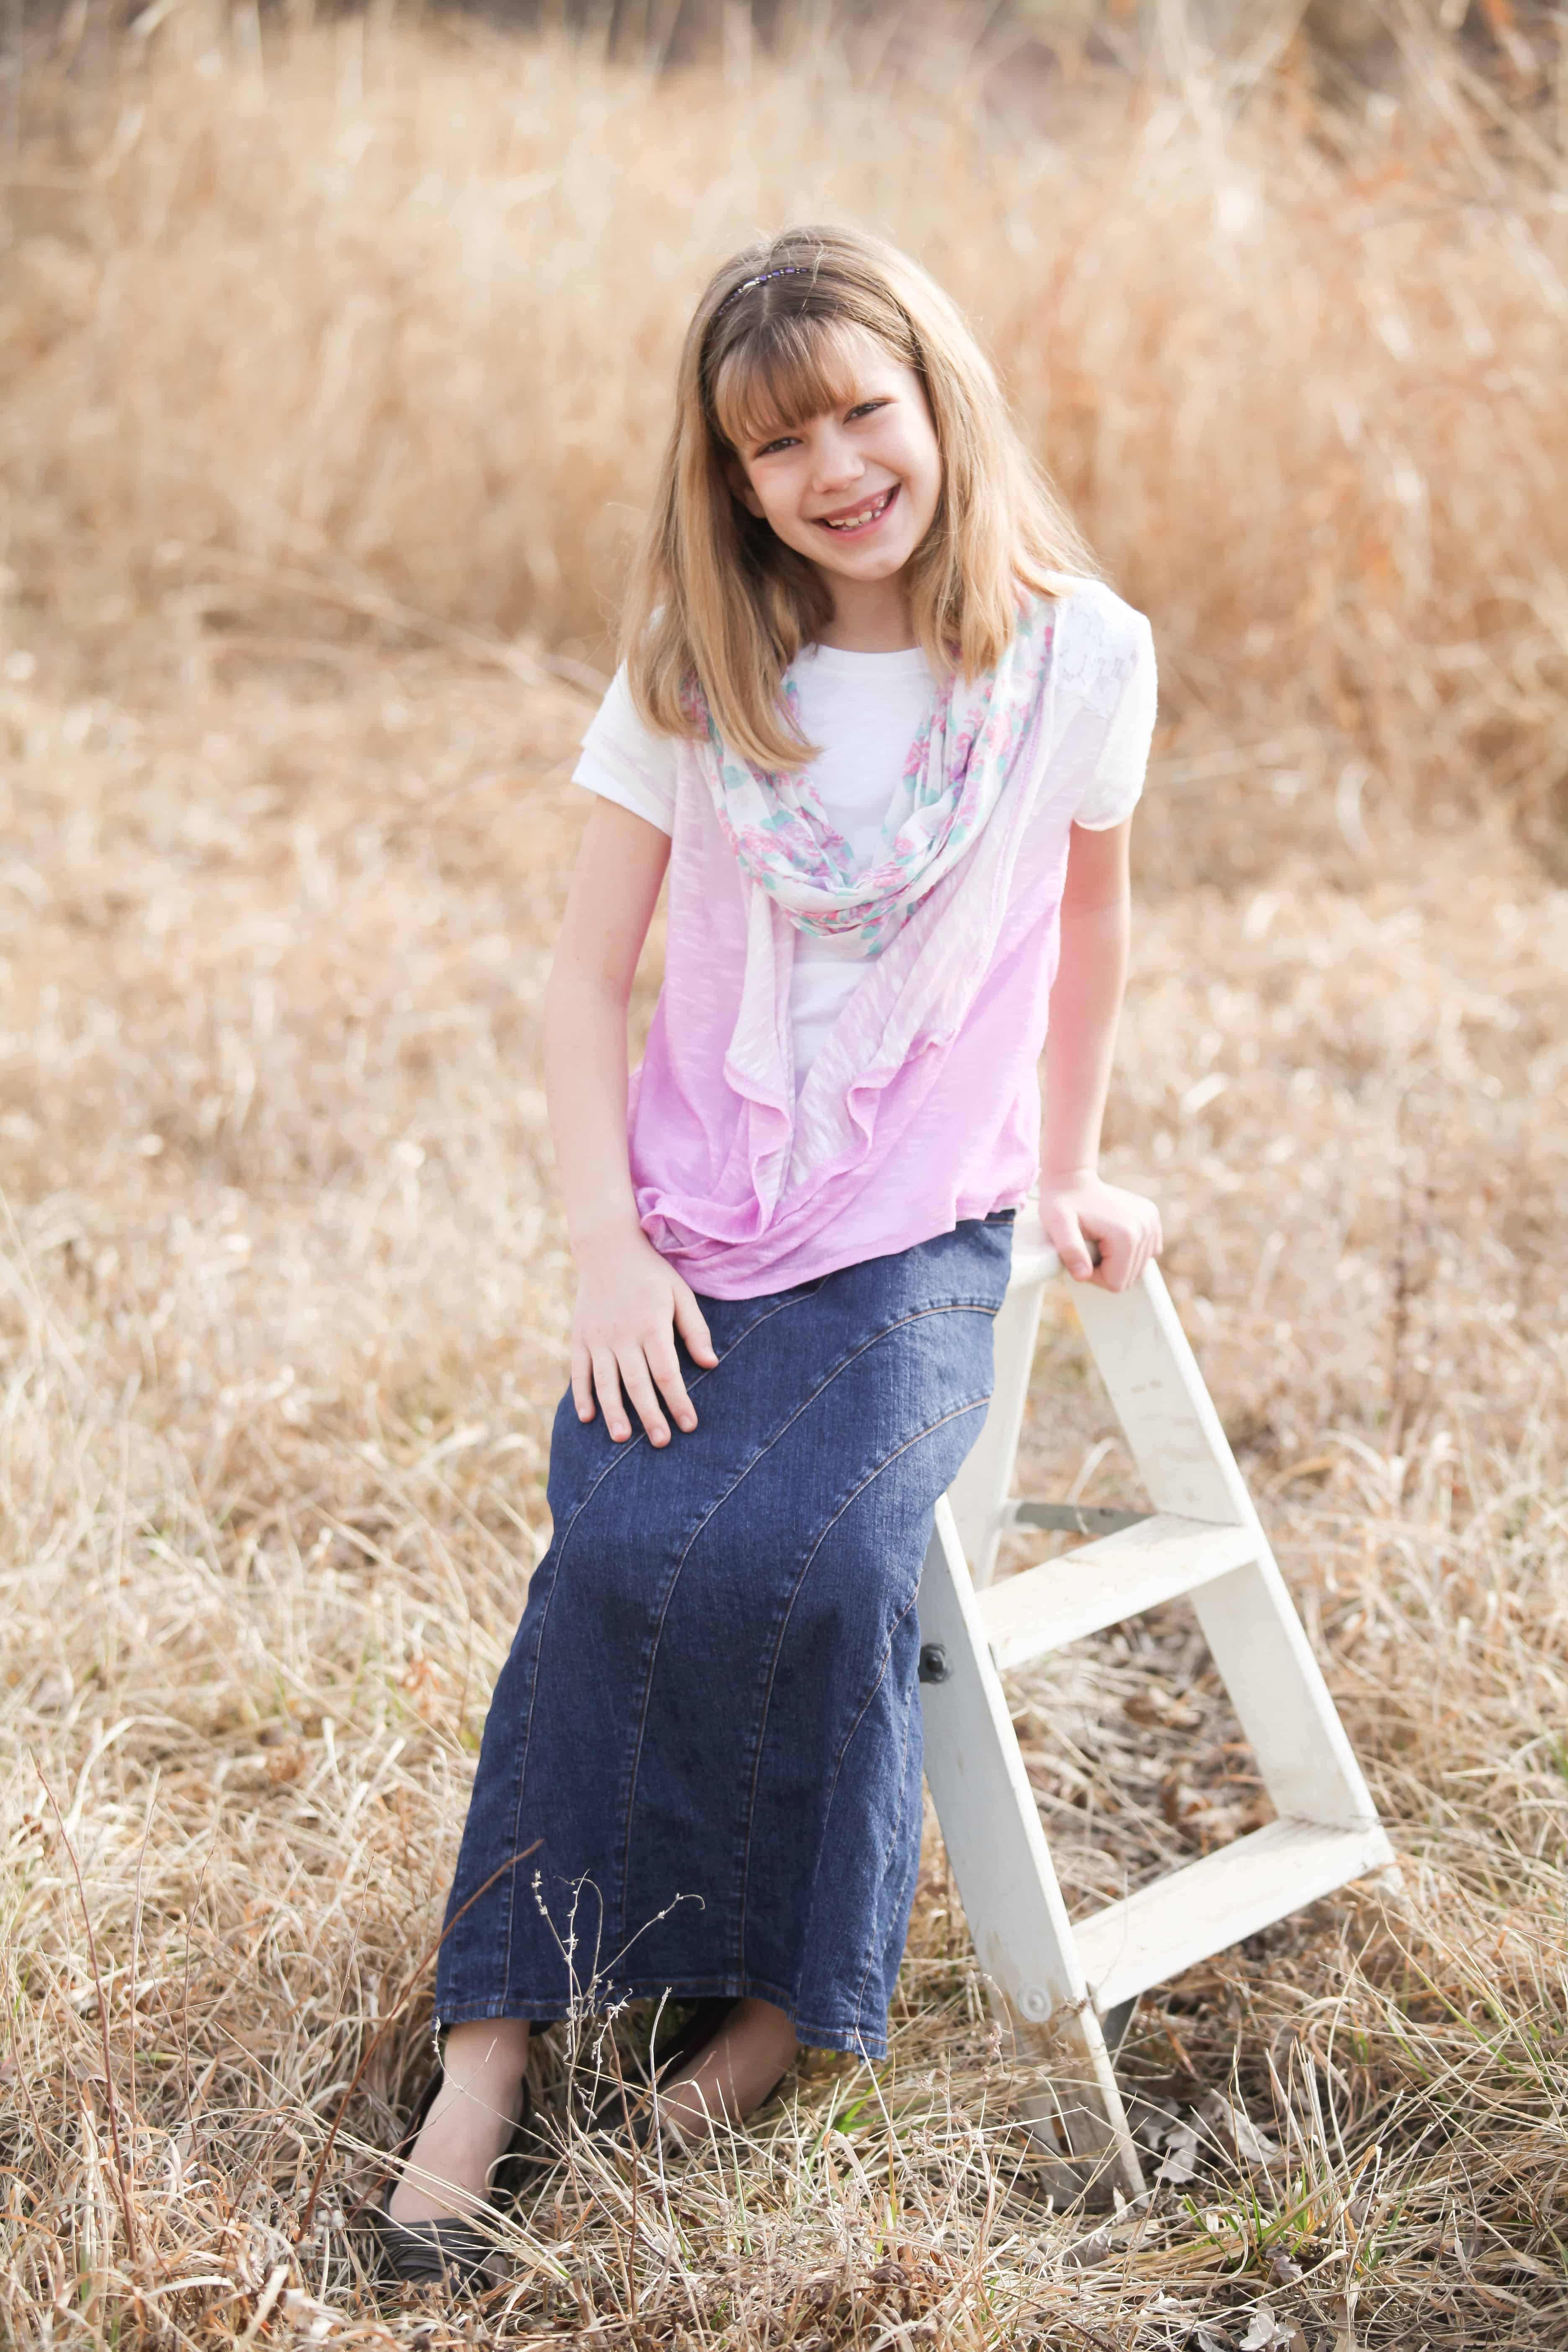 To acquire Denim Long skirt for girls pictures picture trends